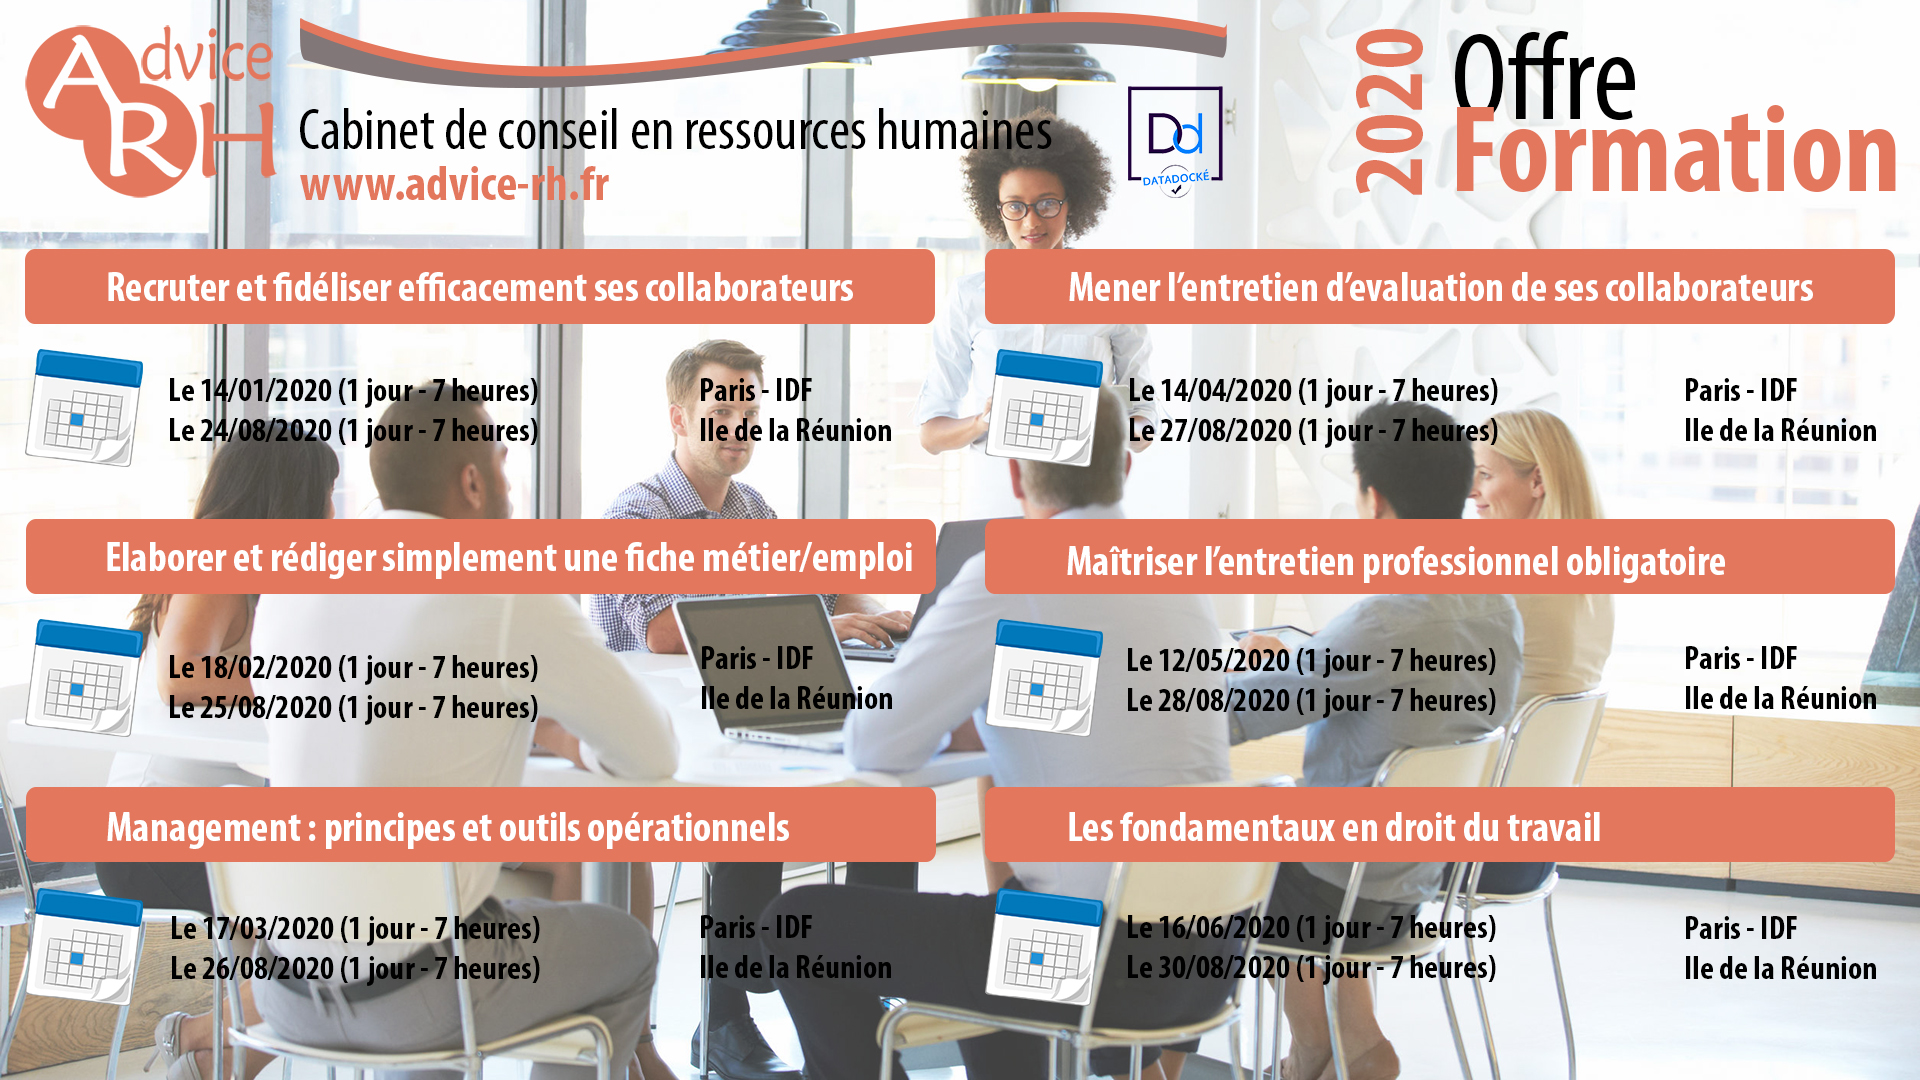 Advice RH - Offre formation 2020